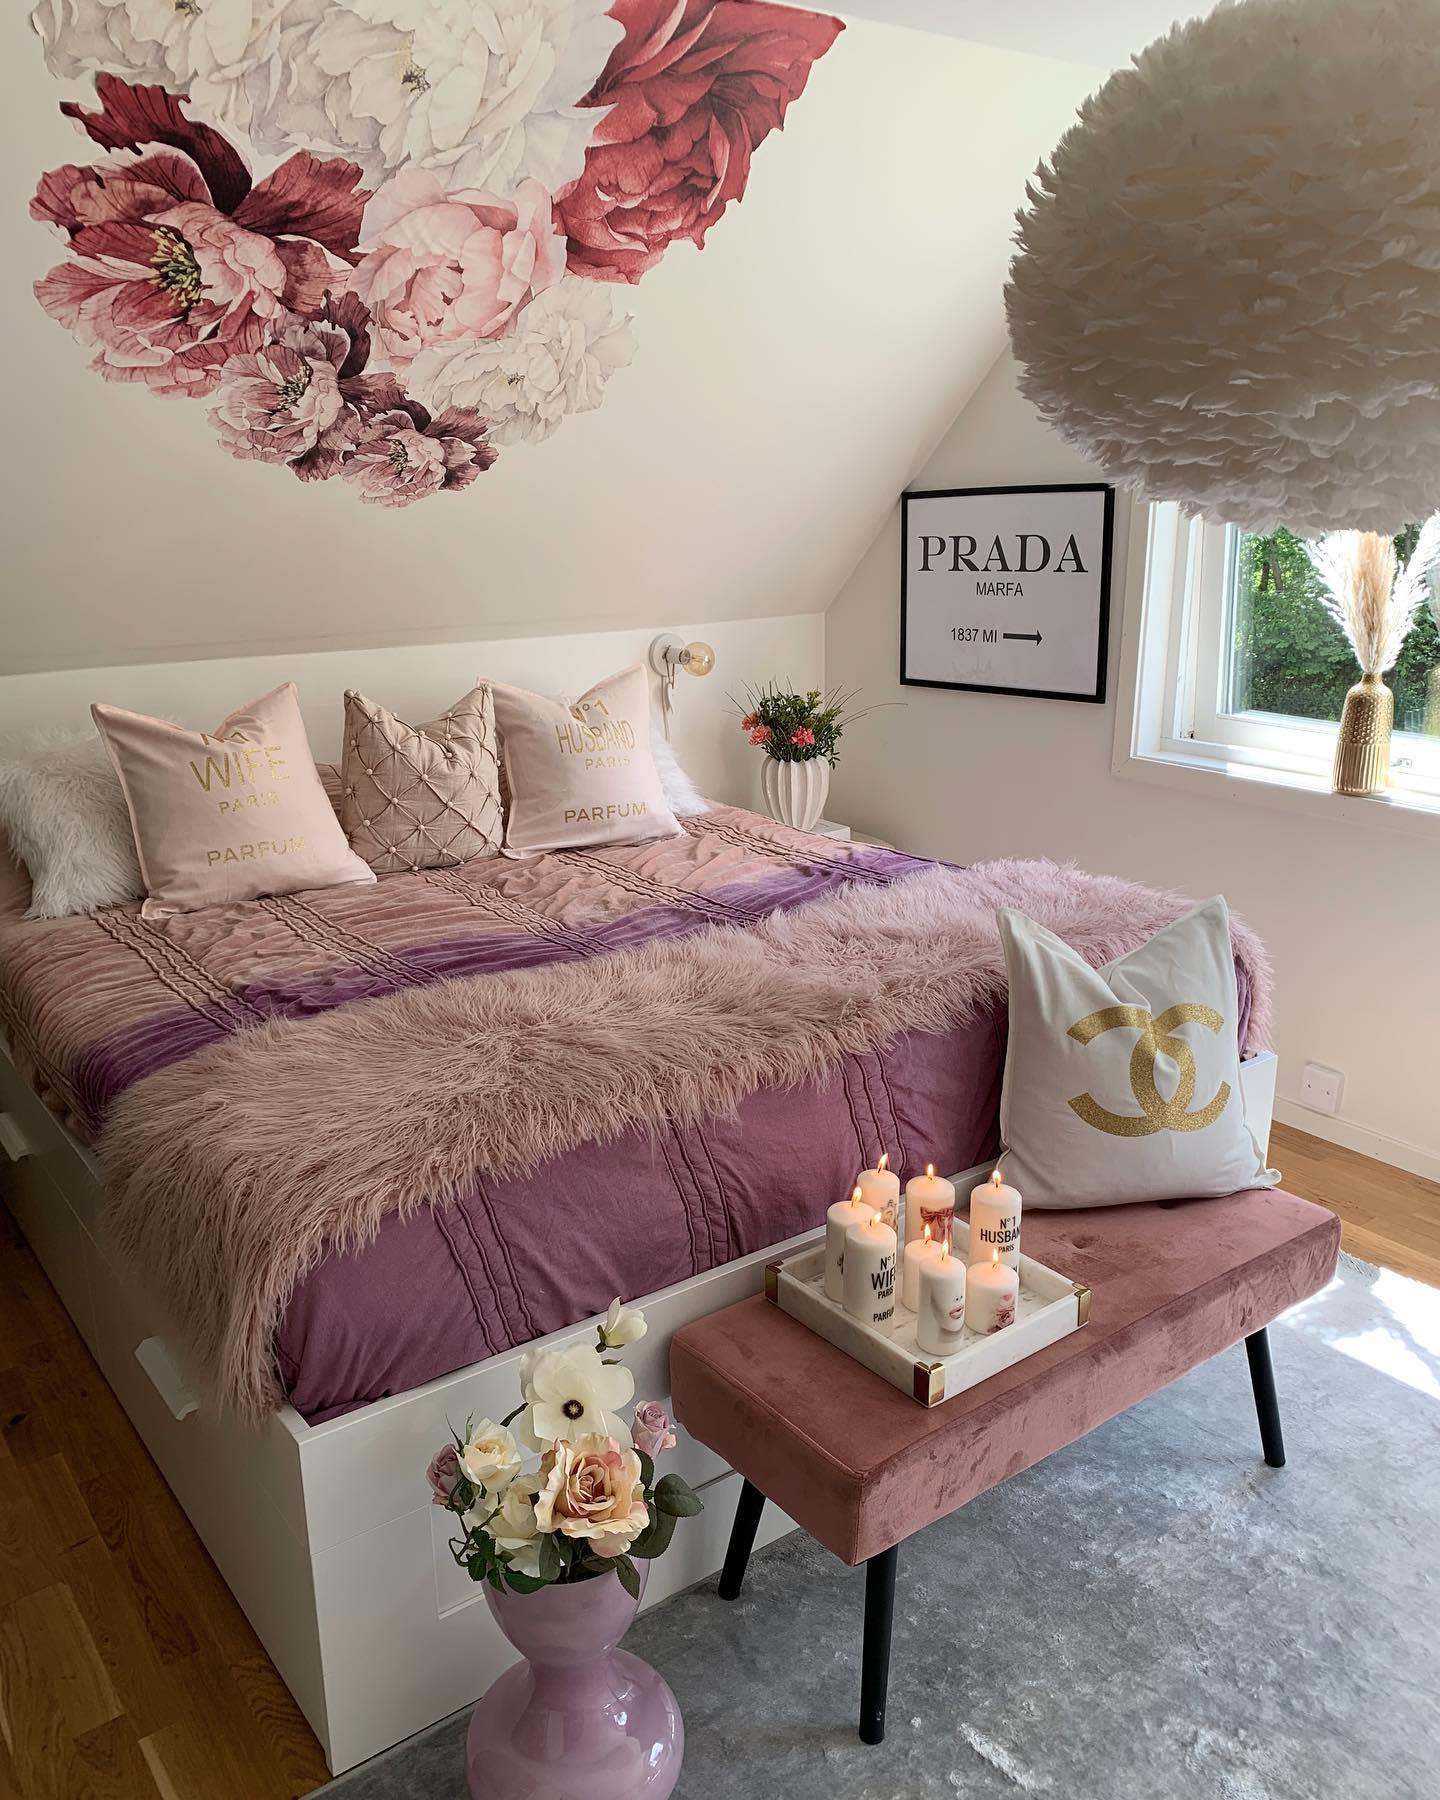 We're spotlighting 21 pink and gray bedrooms that will make you want to design your room around the versatile and chic color combination. The Top 61 Aesthetic Bedroom Ideas